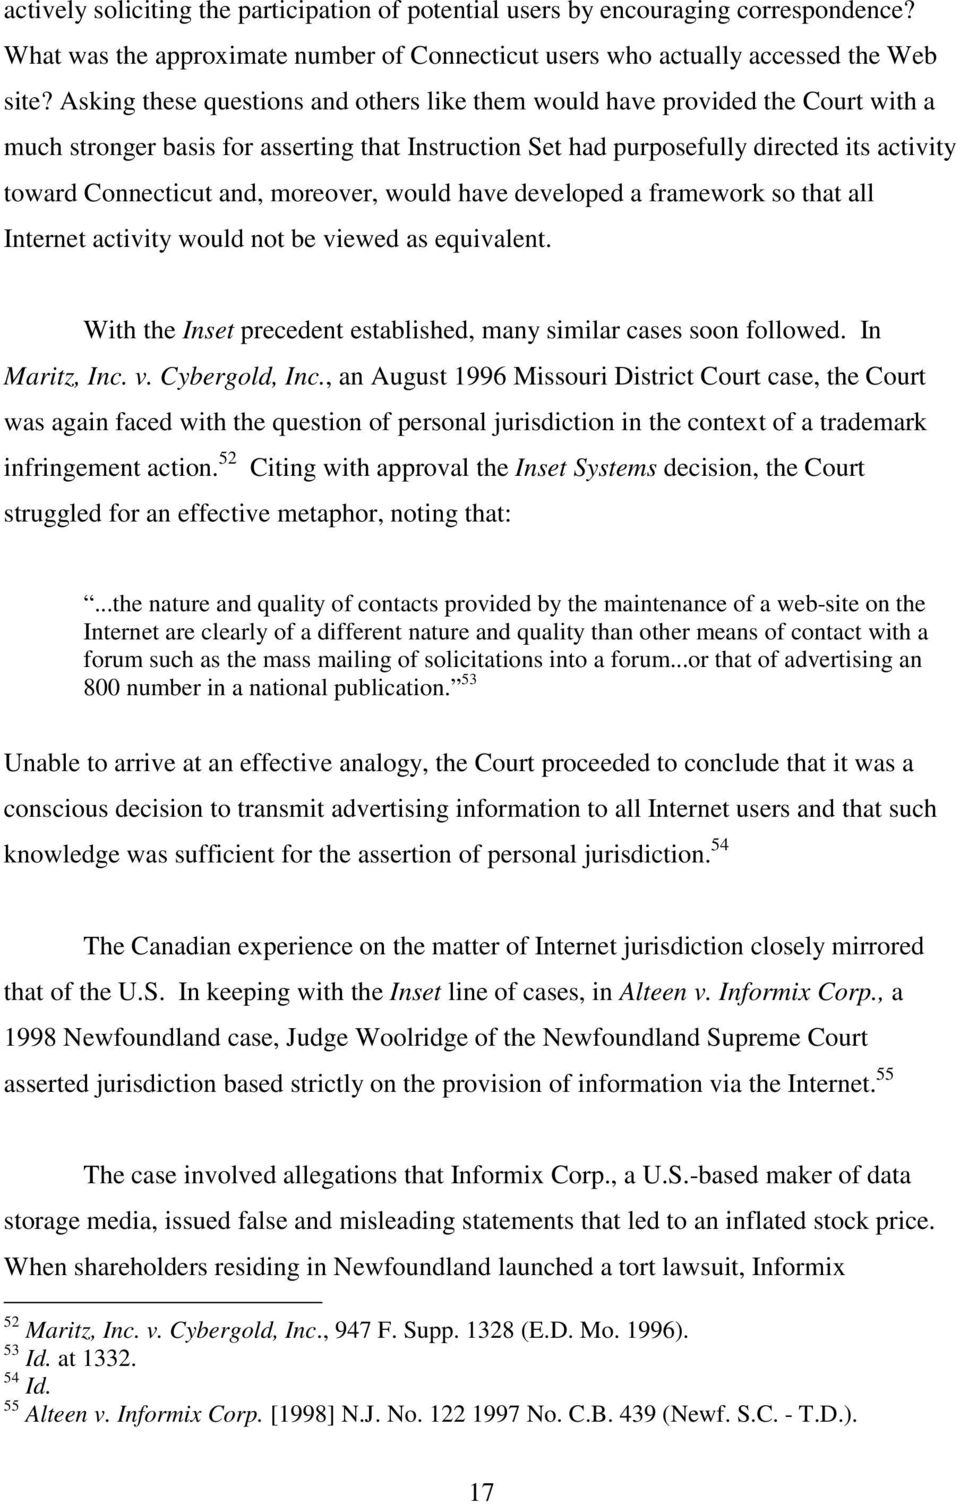 moreover, would have developed a framework so that all Internet activity would not be viewed as equivalent. With the Inset precedent established, many similar cases soon followed. In Maritz, Inc. v. Cybergold, Inc.